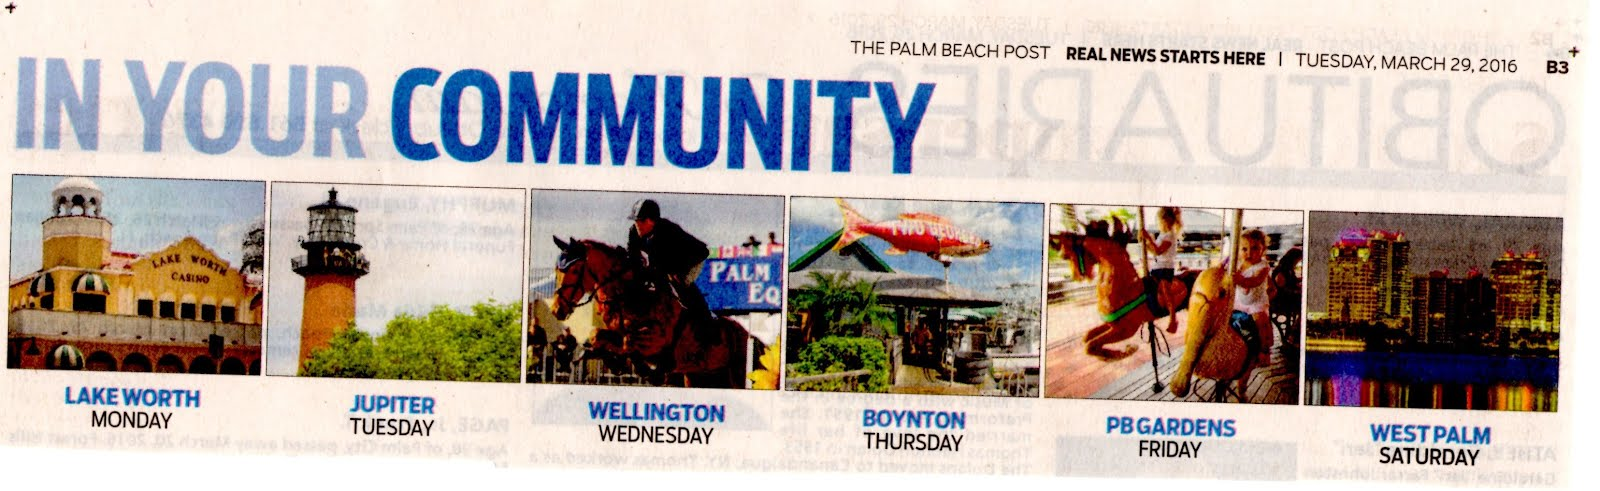 "Palm Beach Post about ""YOUR"" community? Why merely focus on LDub & 5 other cities?"